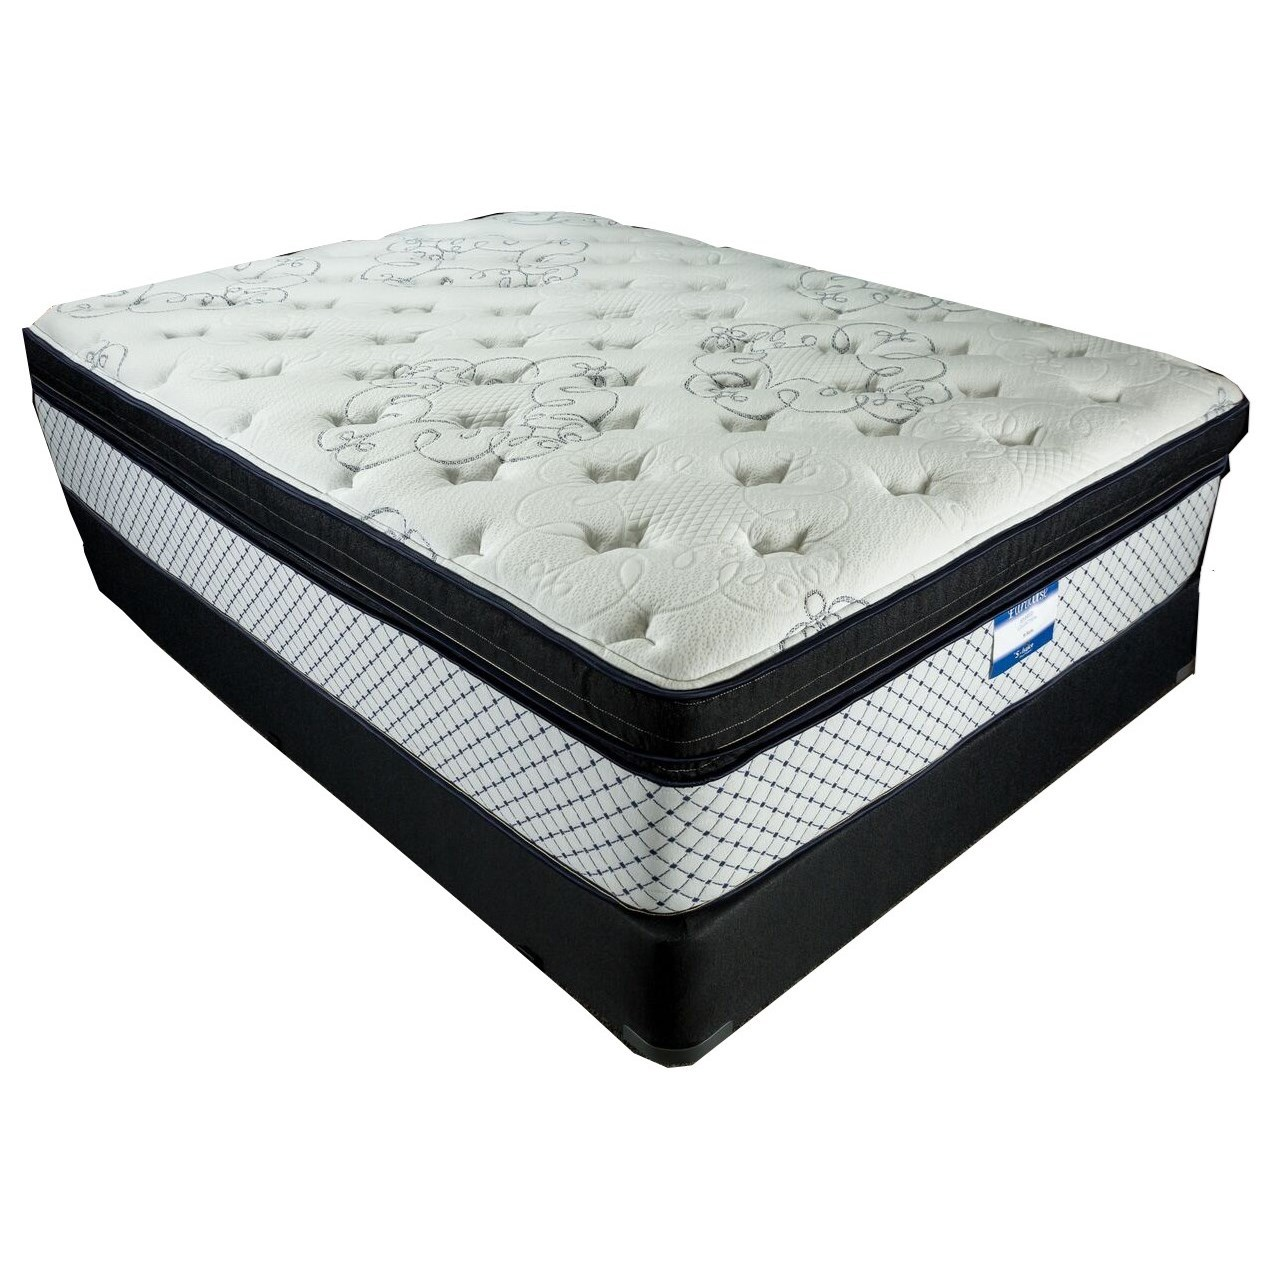 """St Barts Ultra Luxury Twin 14 1/2"""" Ultra Plush Hybrid BT Set by Solstice Sleep Products at Virginia Furniture Market"""